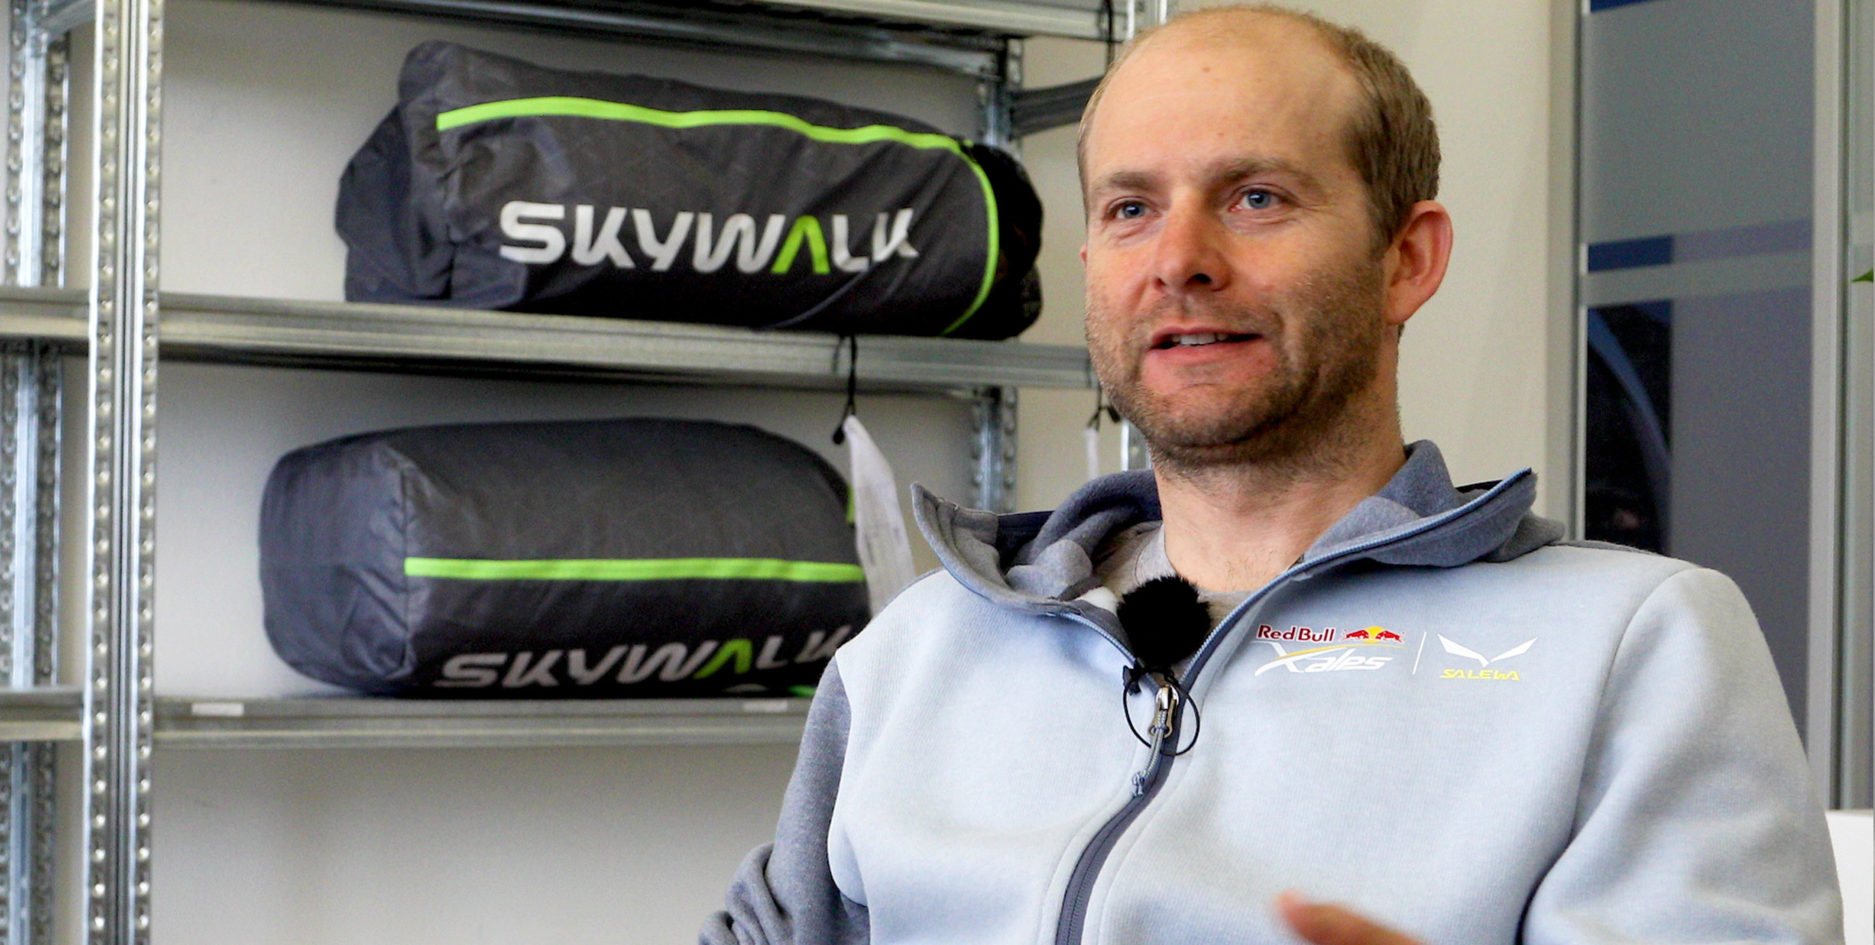 Skywalk Alex Höllwarth interview